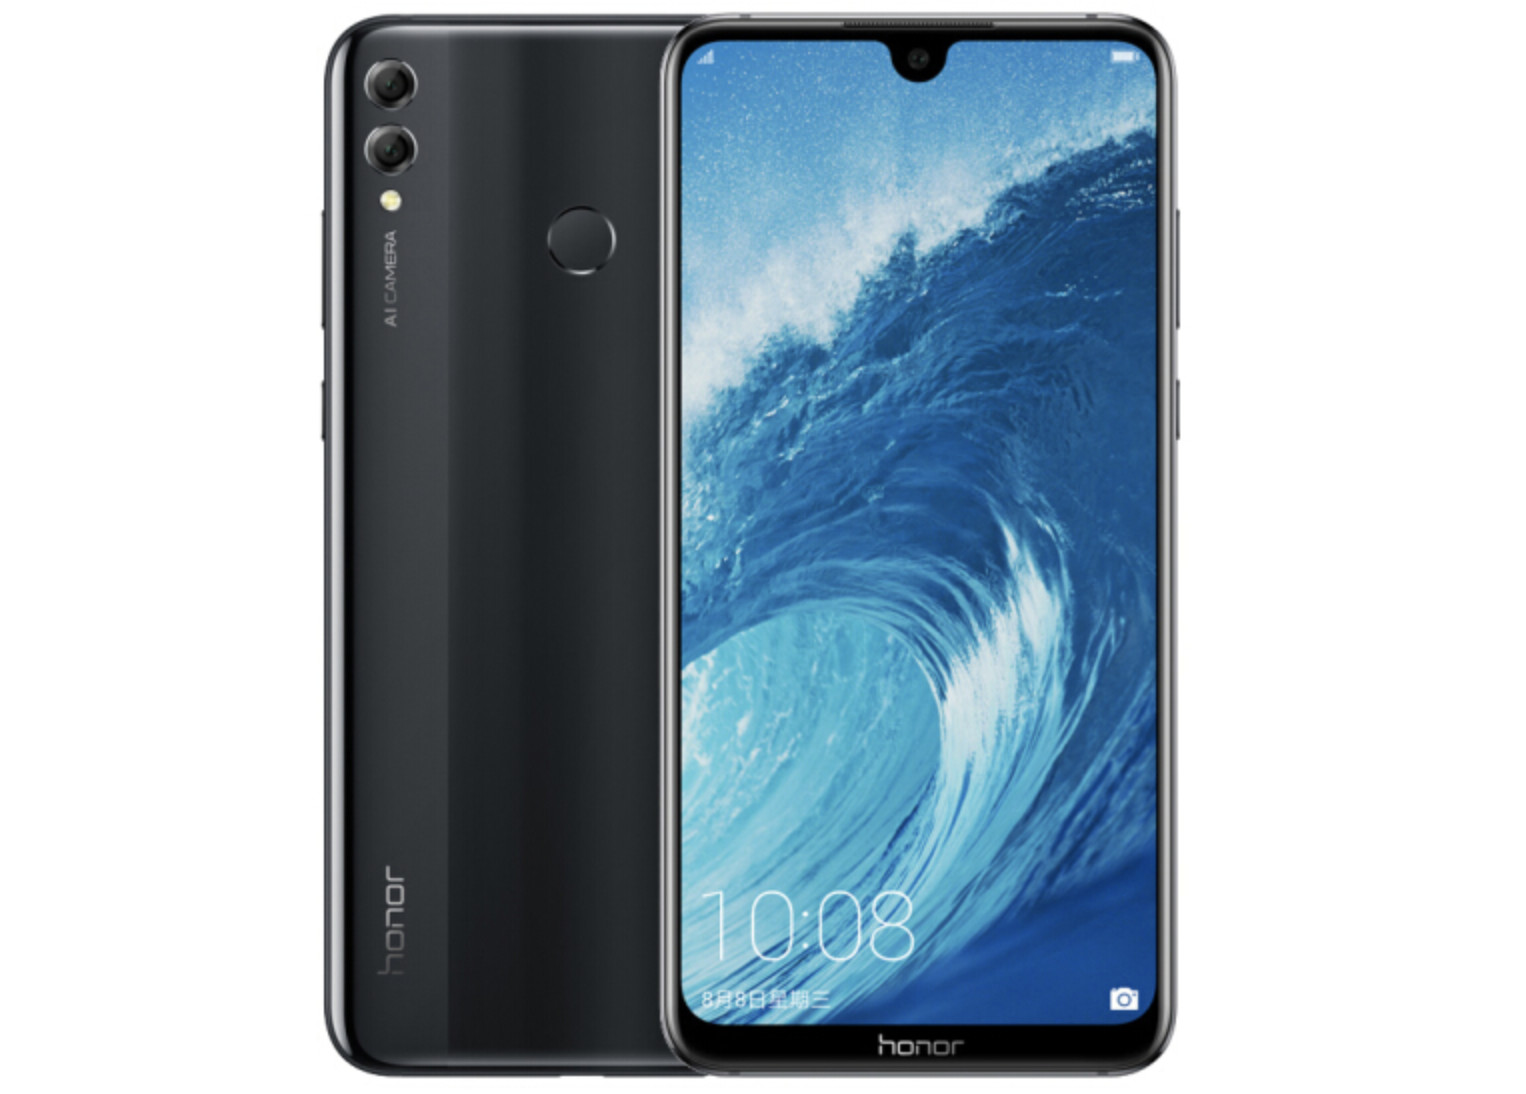 Specifications For The Honor 8x Max Leak Features A 712 Inch And Display With Teardrop Notch